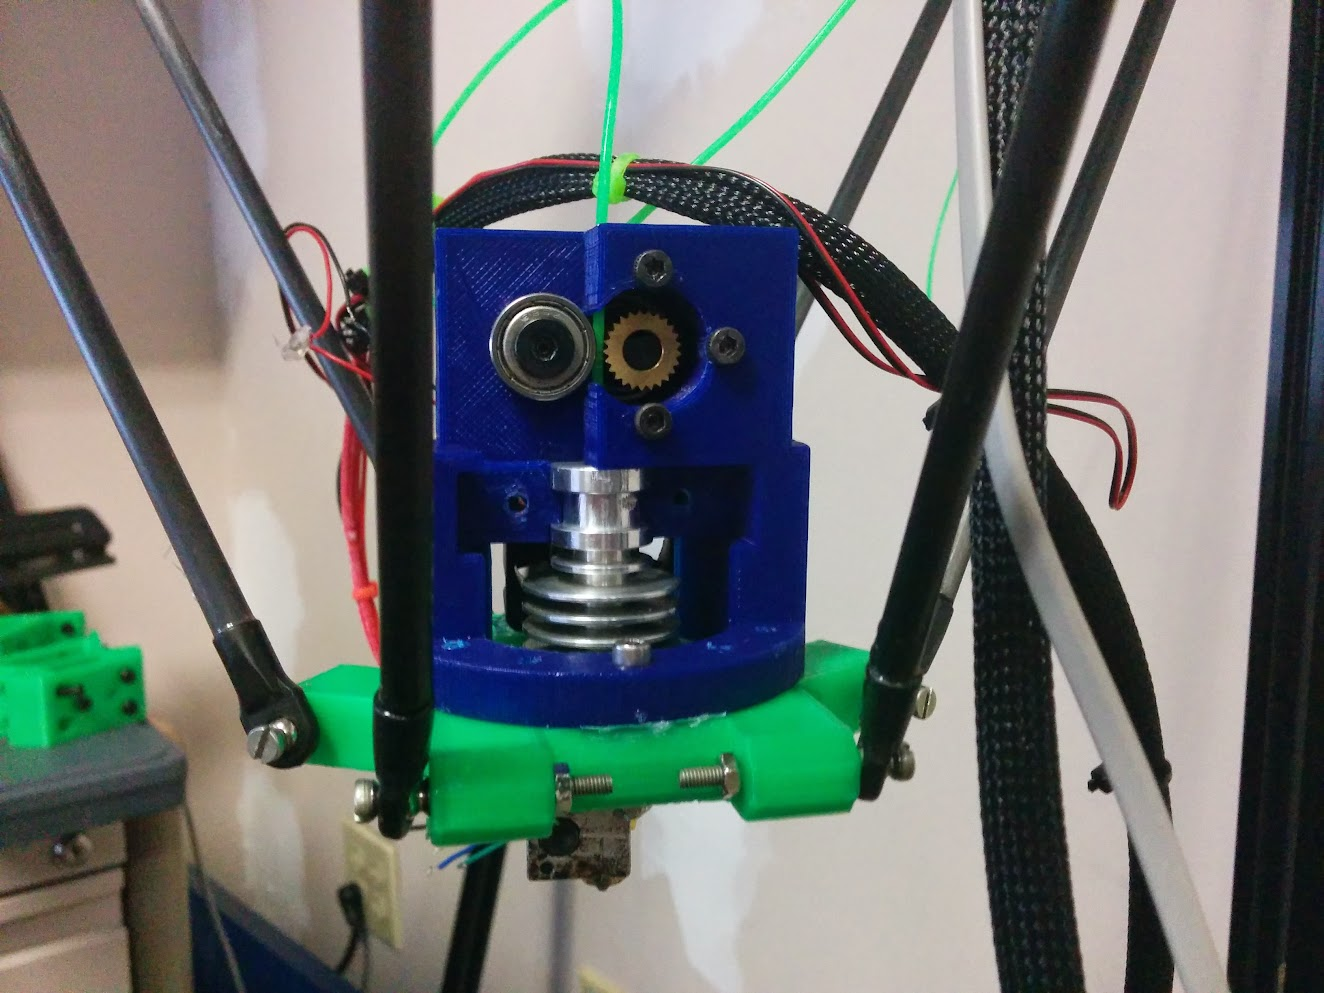 Reprap Irc Archive For 2014 12 23 Which Brings Me To Wiring Mixshop Doesn39t Give Much More Detail